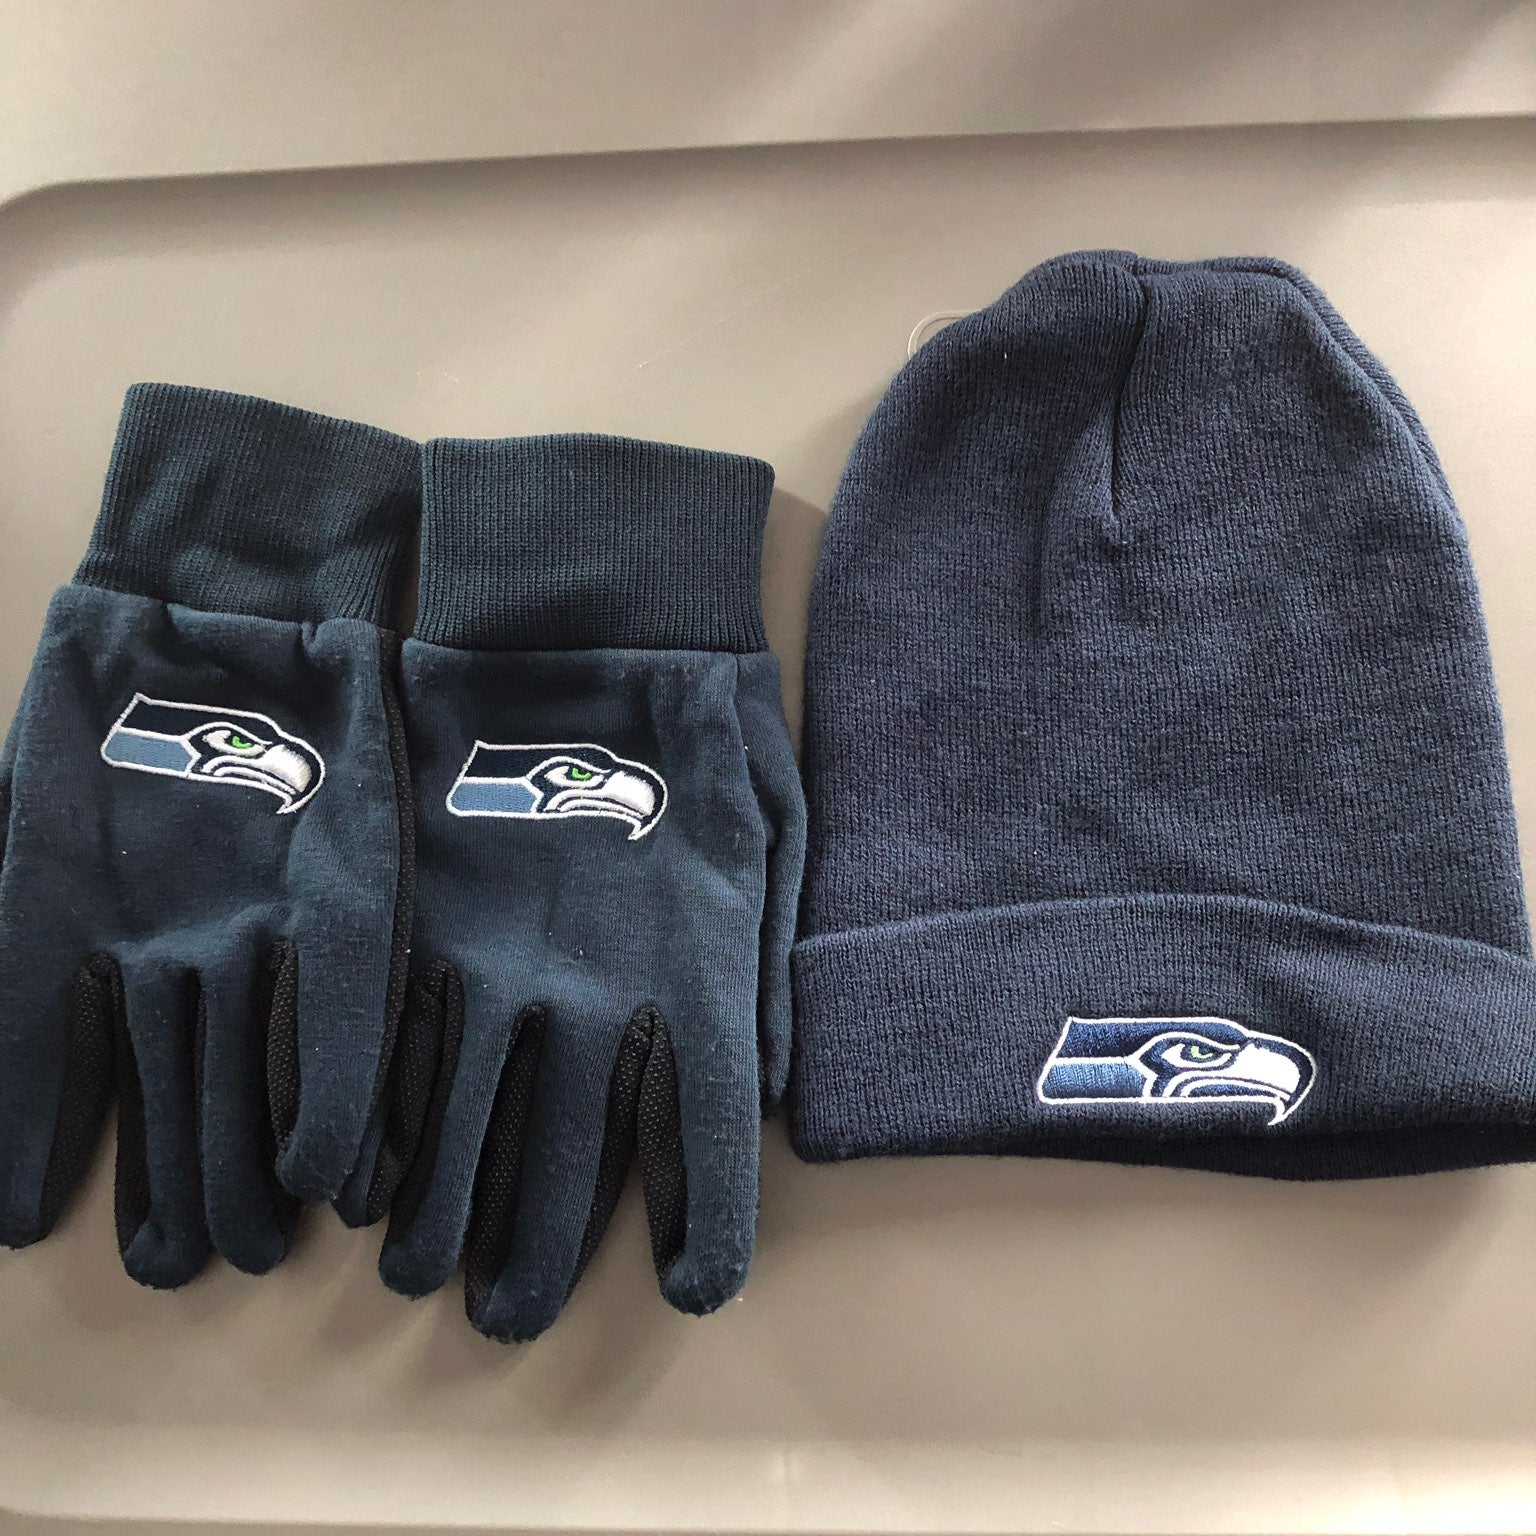 Seahawks beanie and gloves